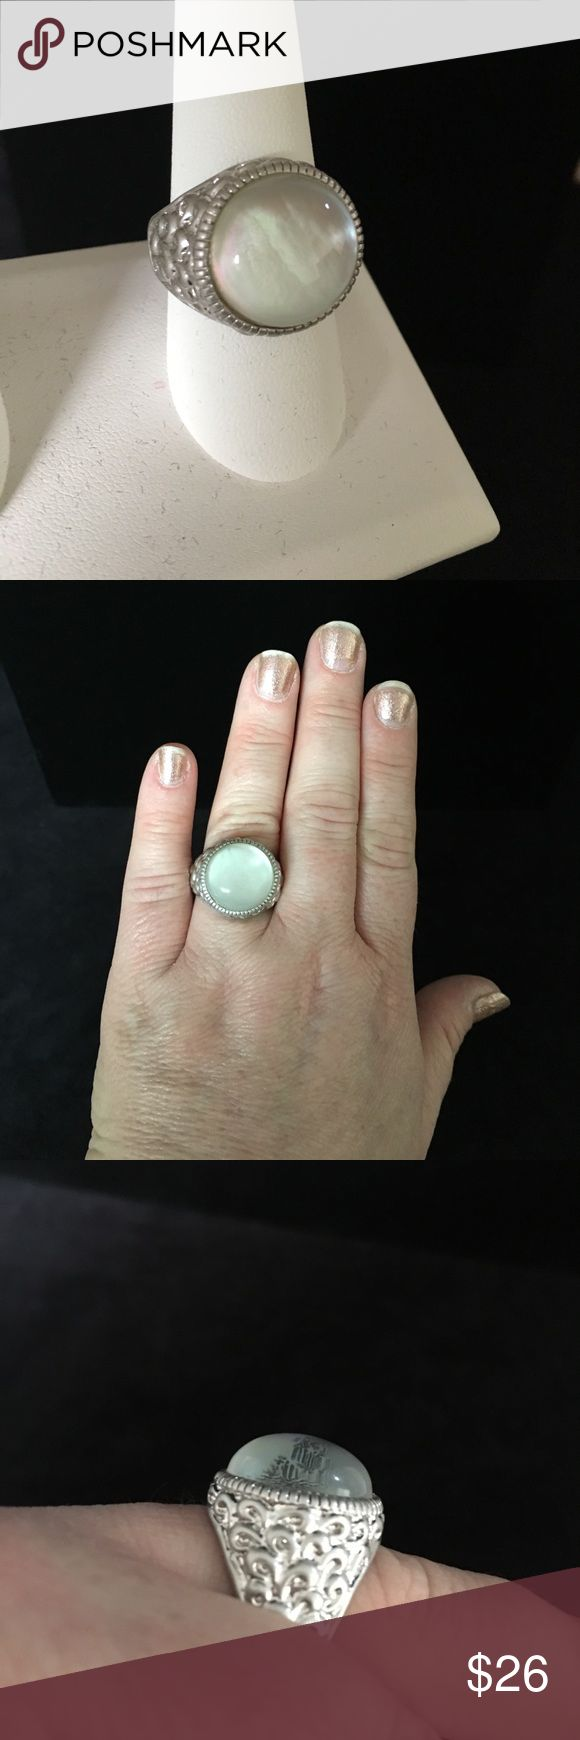 "Lia Sophia Crystal Ball ring size 9 Beautiful detail with iridescent ""crystal ball"". Lia Sophia Jewelry Rings"